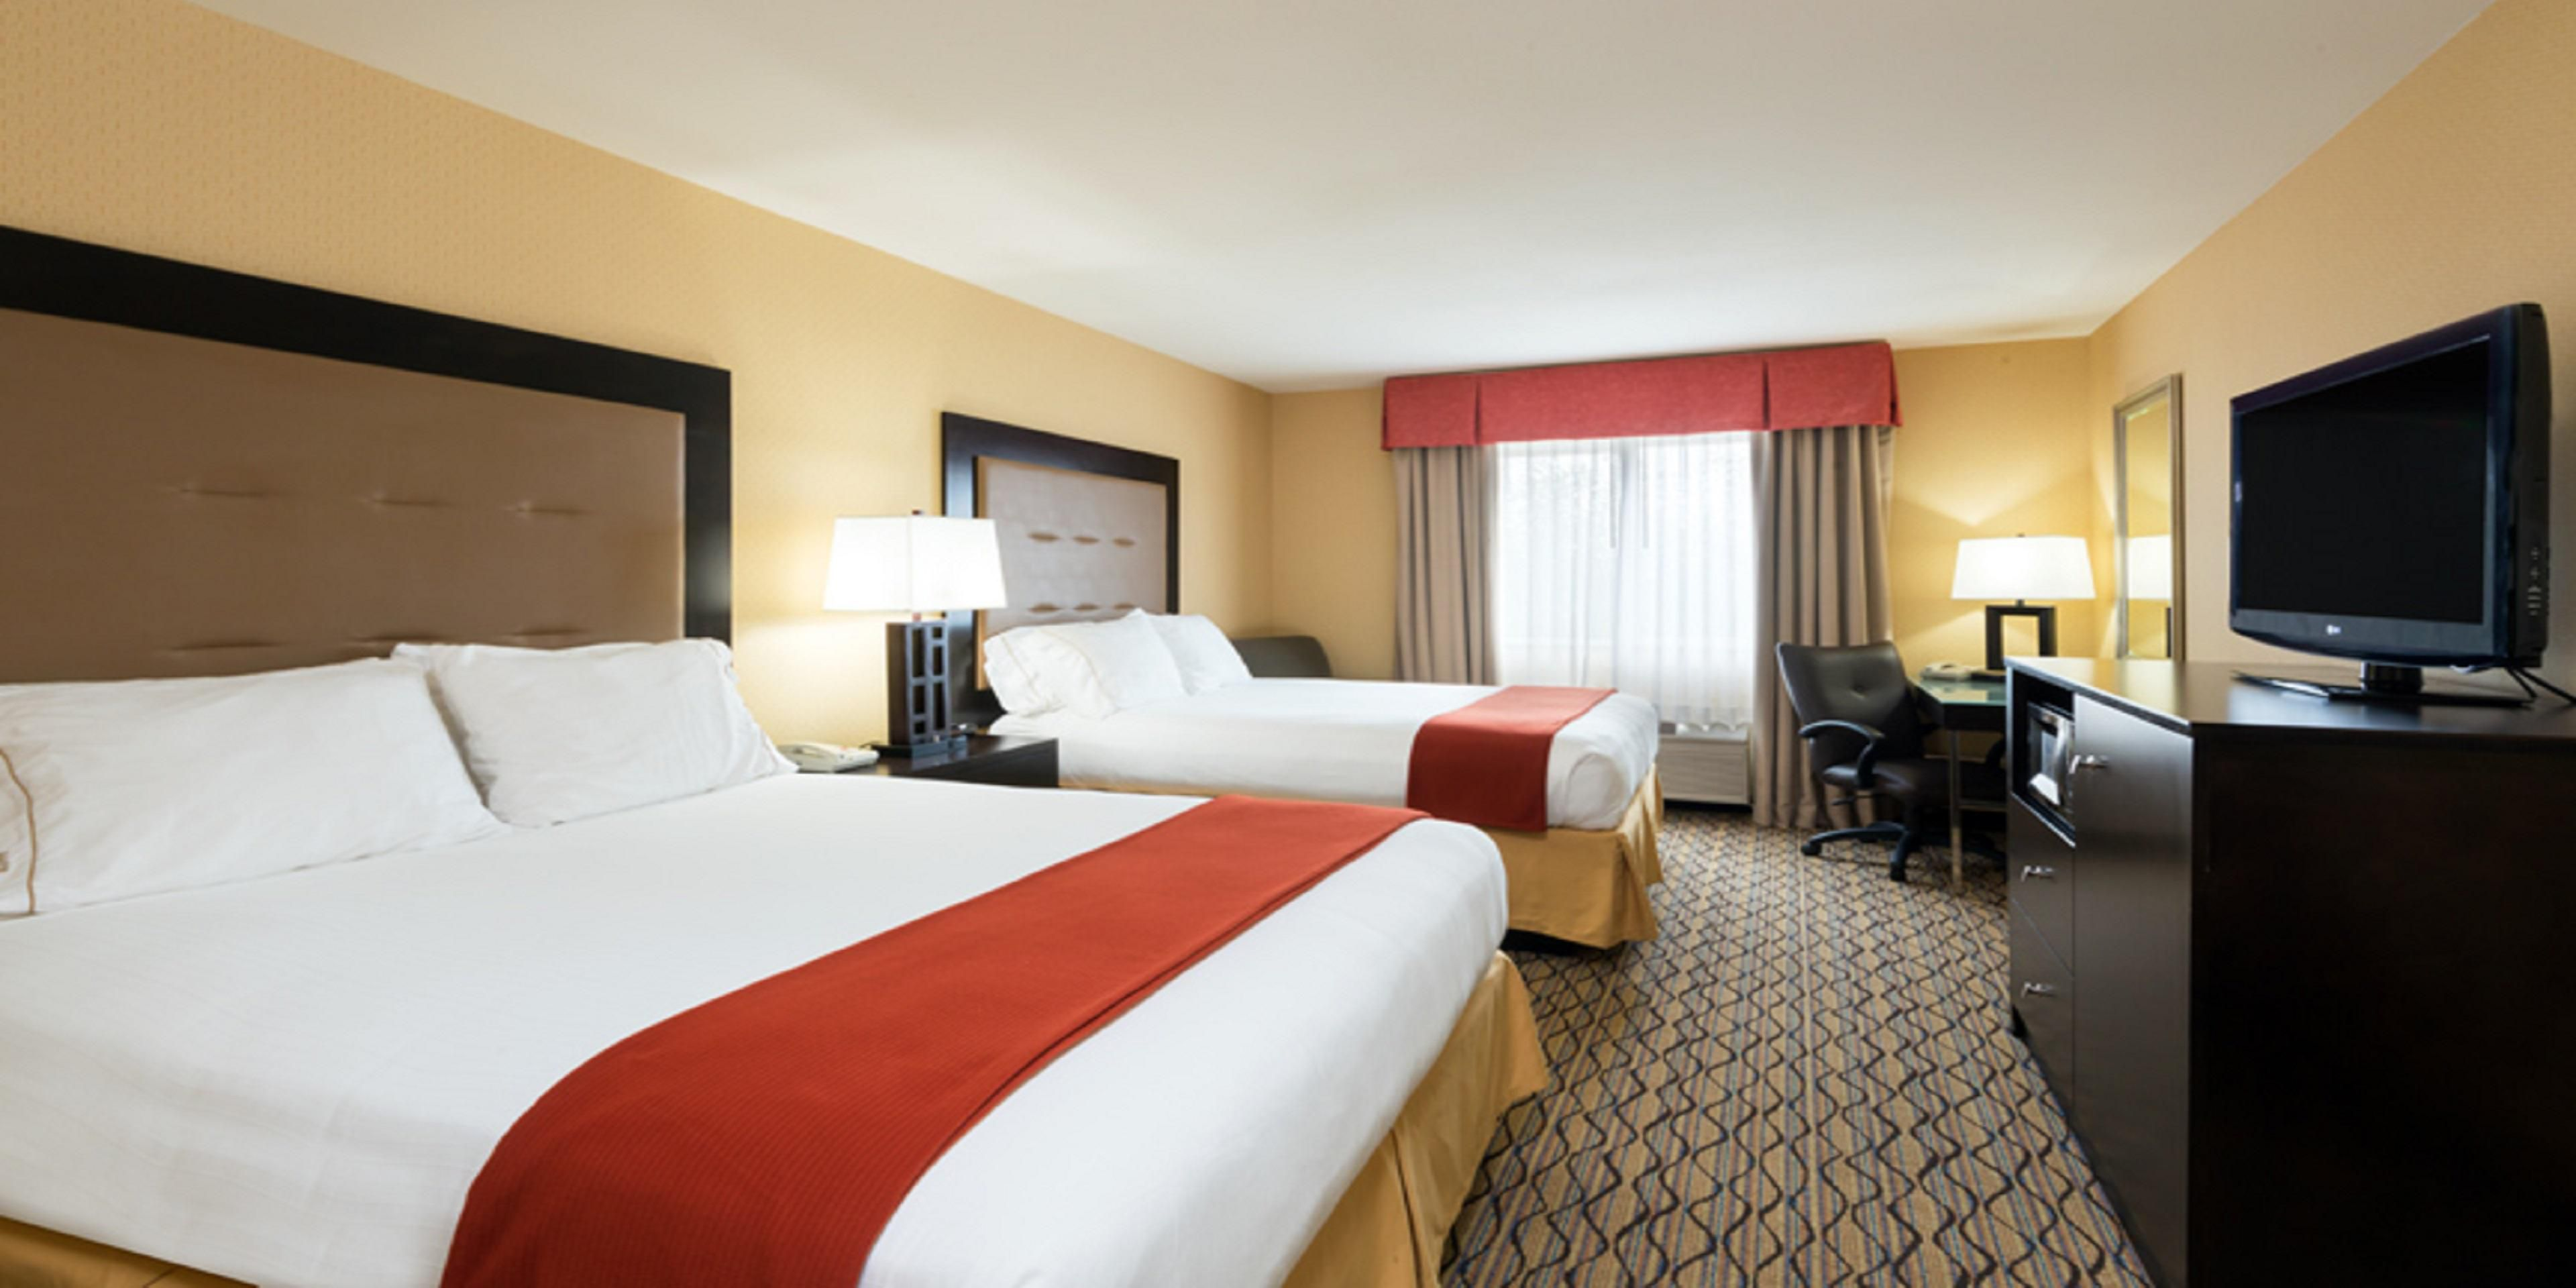 Seattle Hotel Suites 2 Bedrooms Holiday Inn Express Suites North Seattle Shoreline Hotel By Ihg